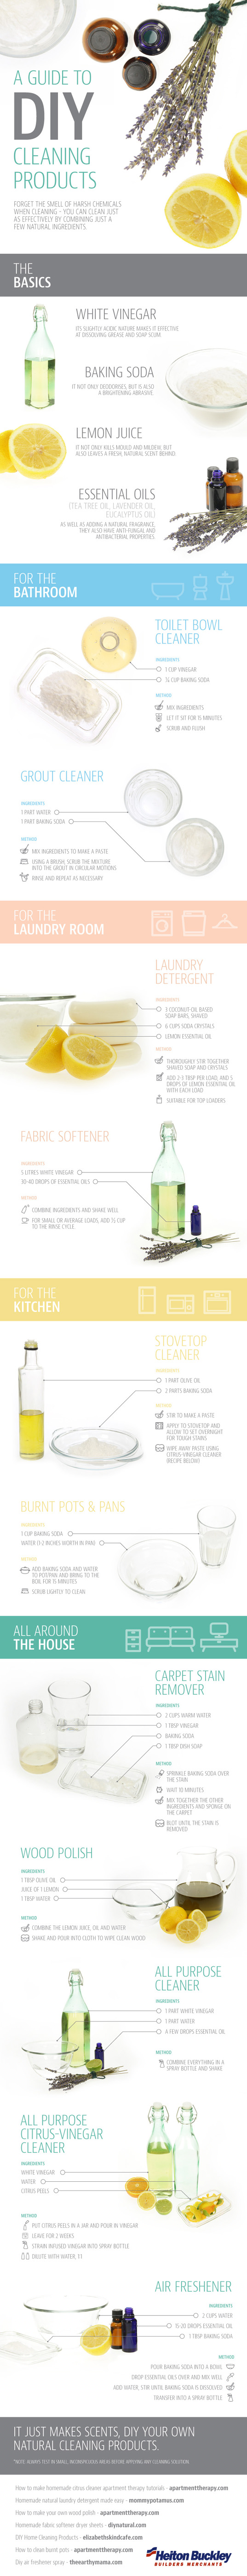 infographic a guide to natural cleaning diy products